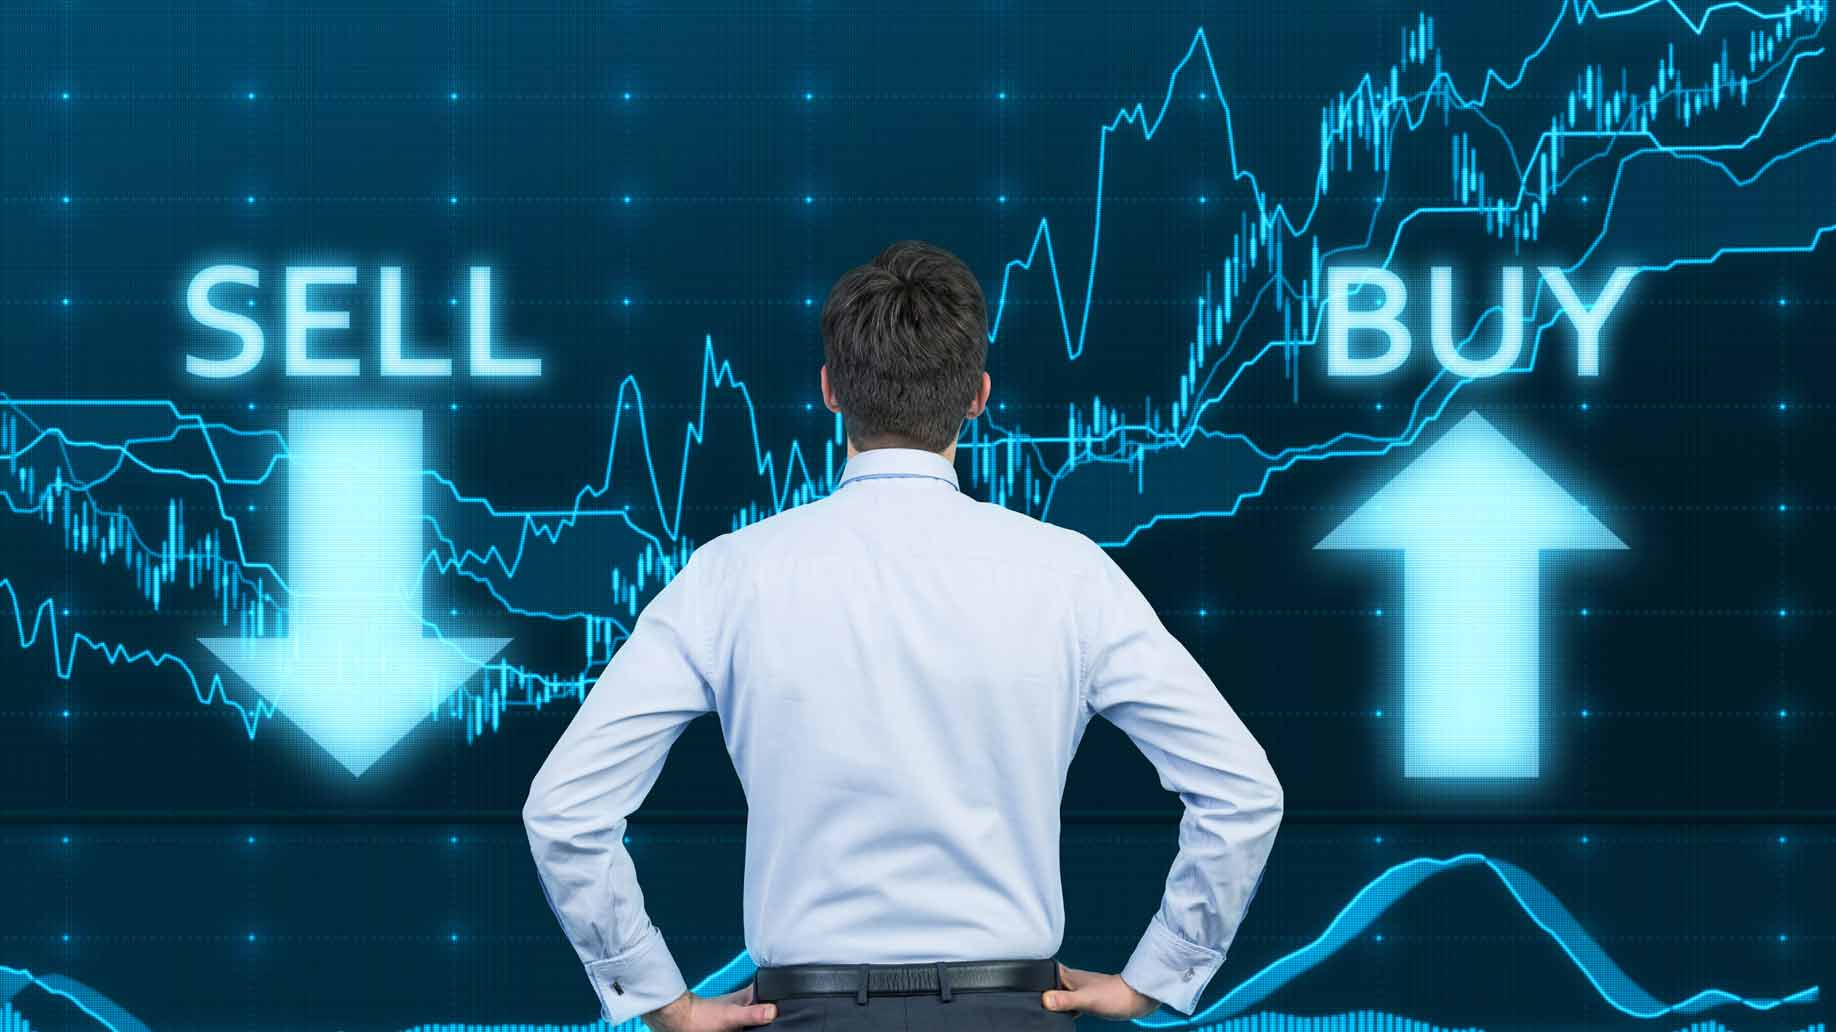 Global factors, rupee, oil to drive stock markets this week: Experts